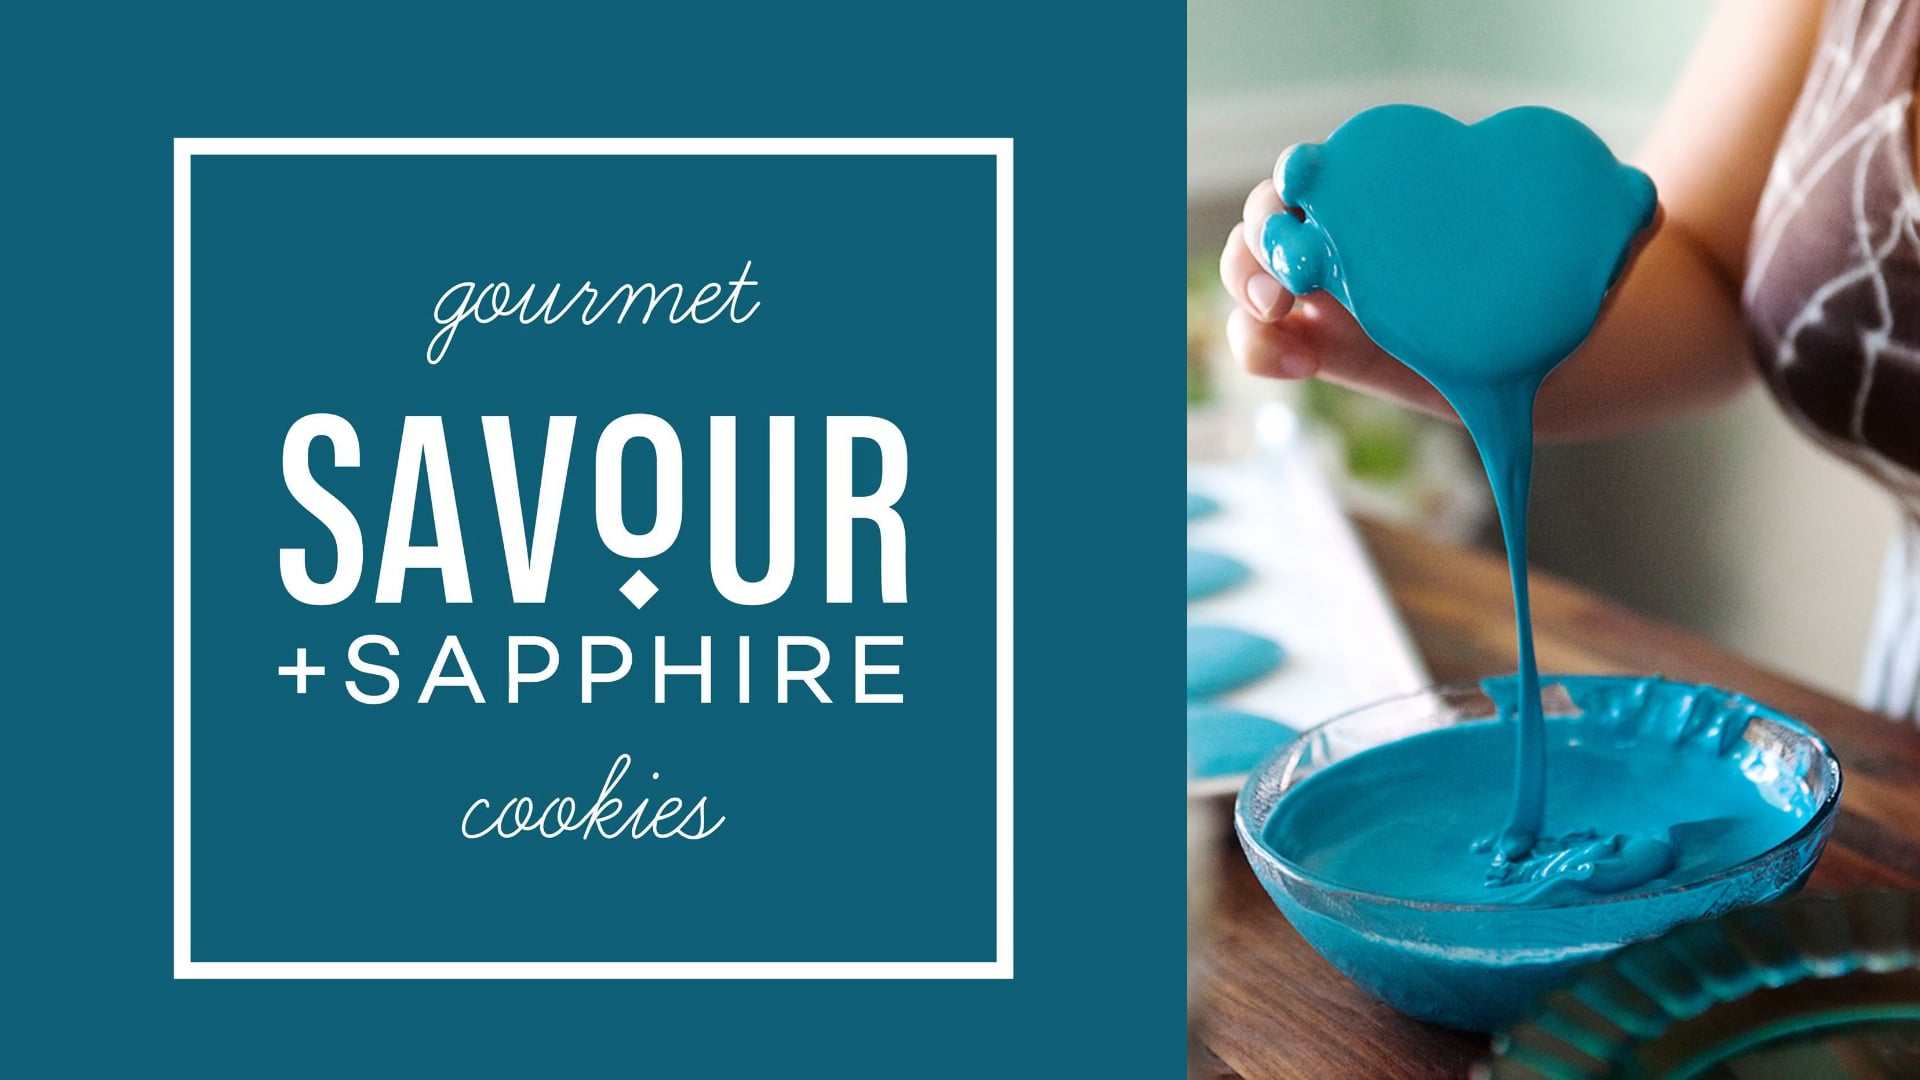 Savour and Sapphire 30 second Web Ad